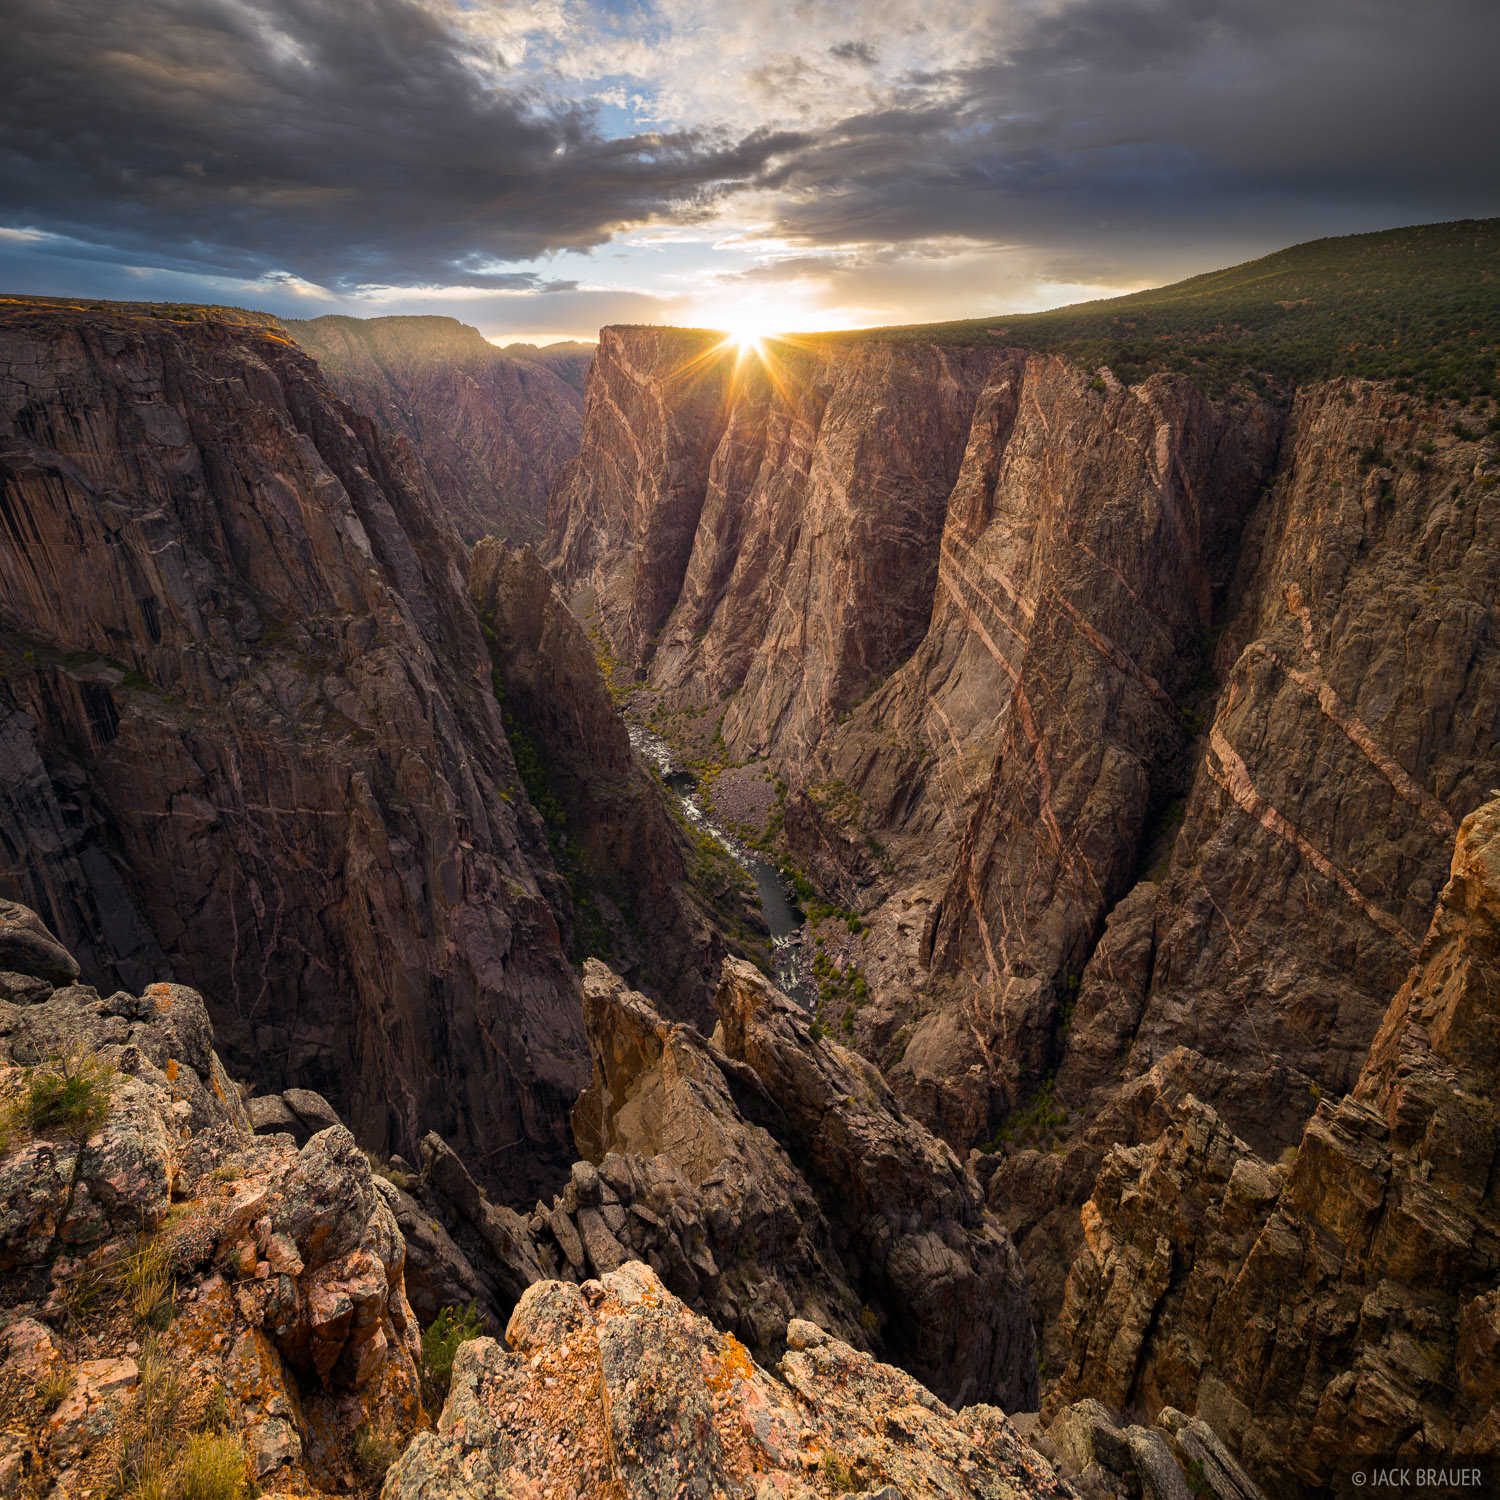 Black Canyon of the Gunnison, Colorado, Gunnison River, Black Canyon, national park, Painted Wall, sunset, photo